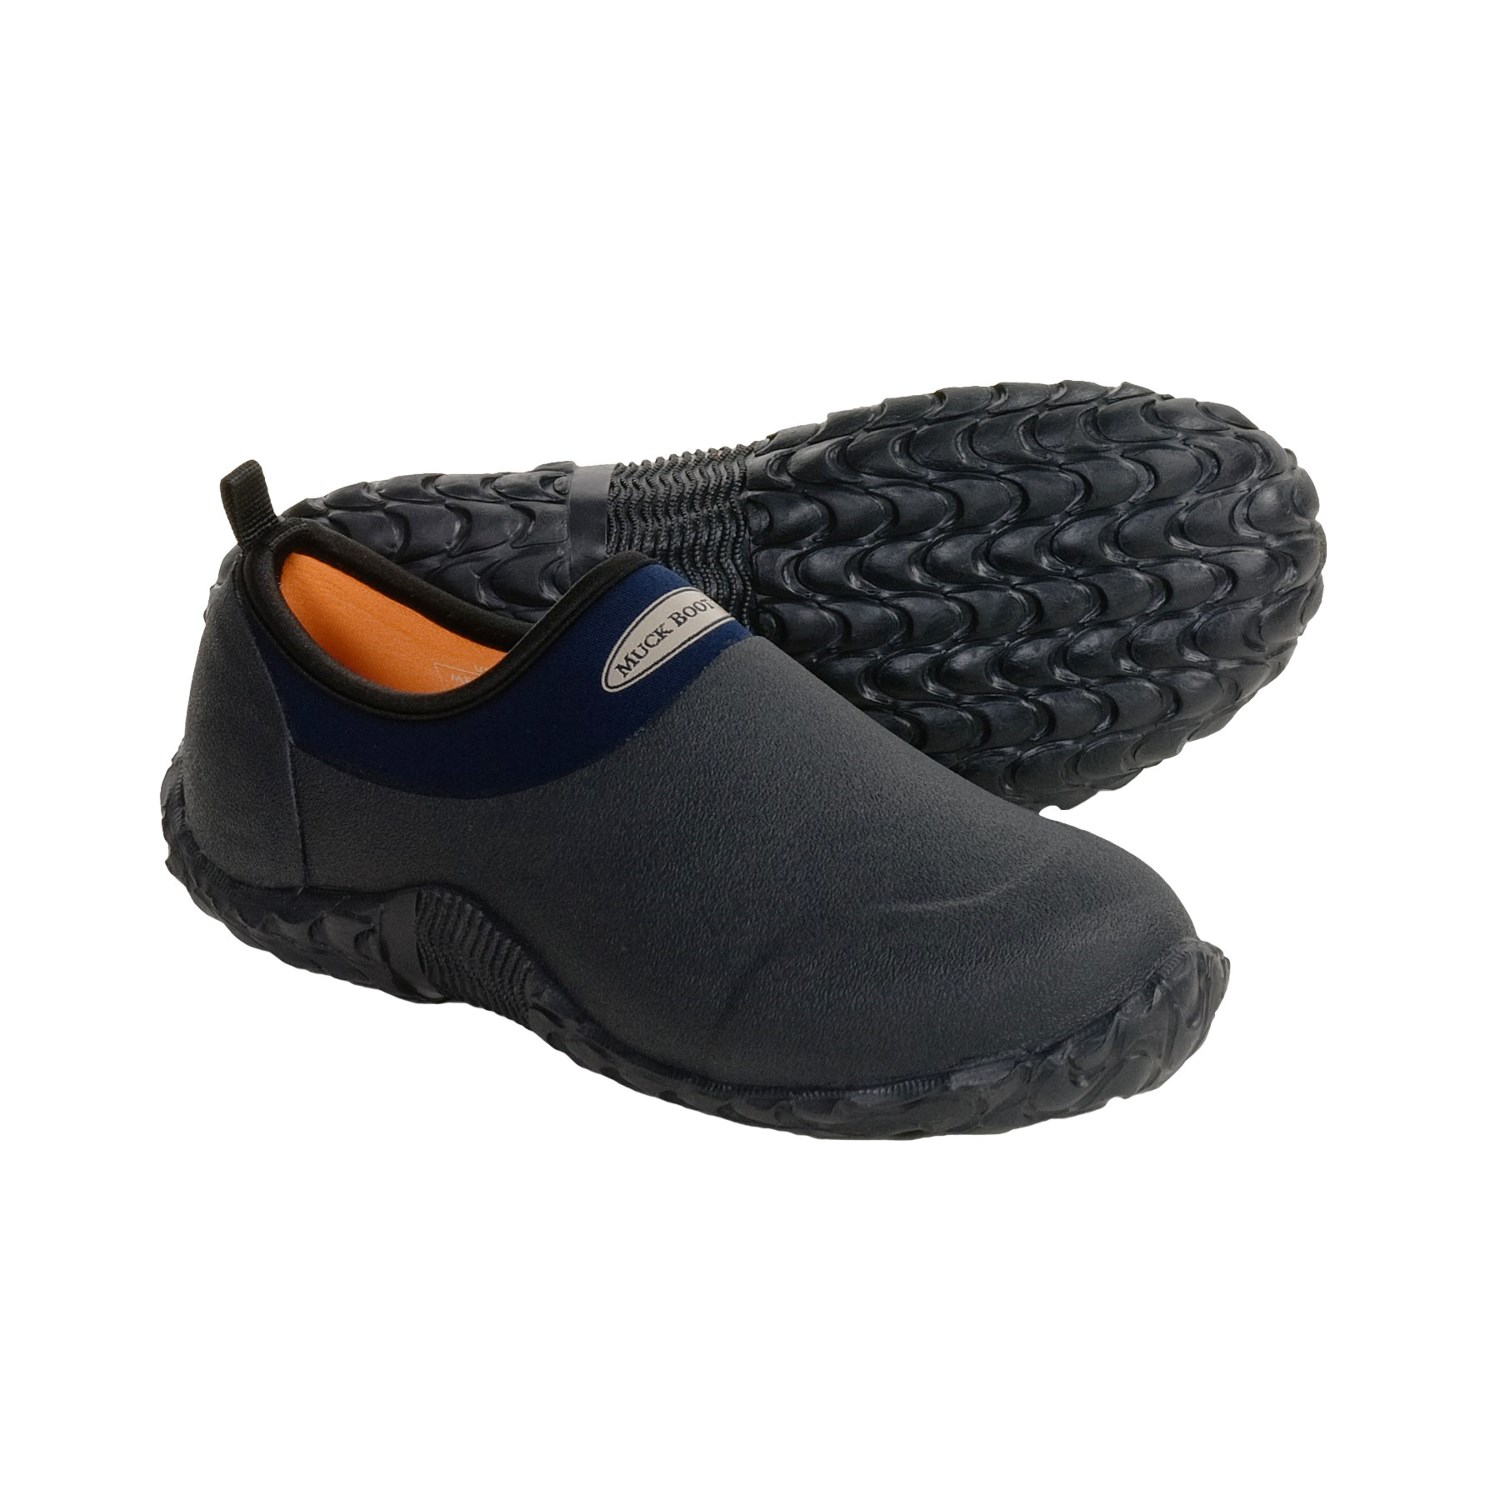 Company Edgewater Camp Shoes Waterproof For Men And Women In Navy